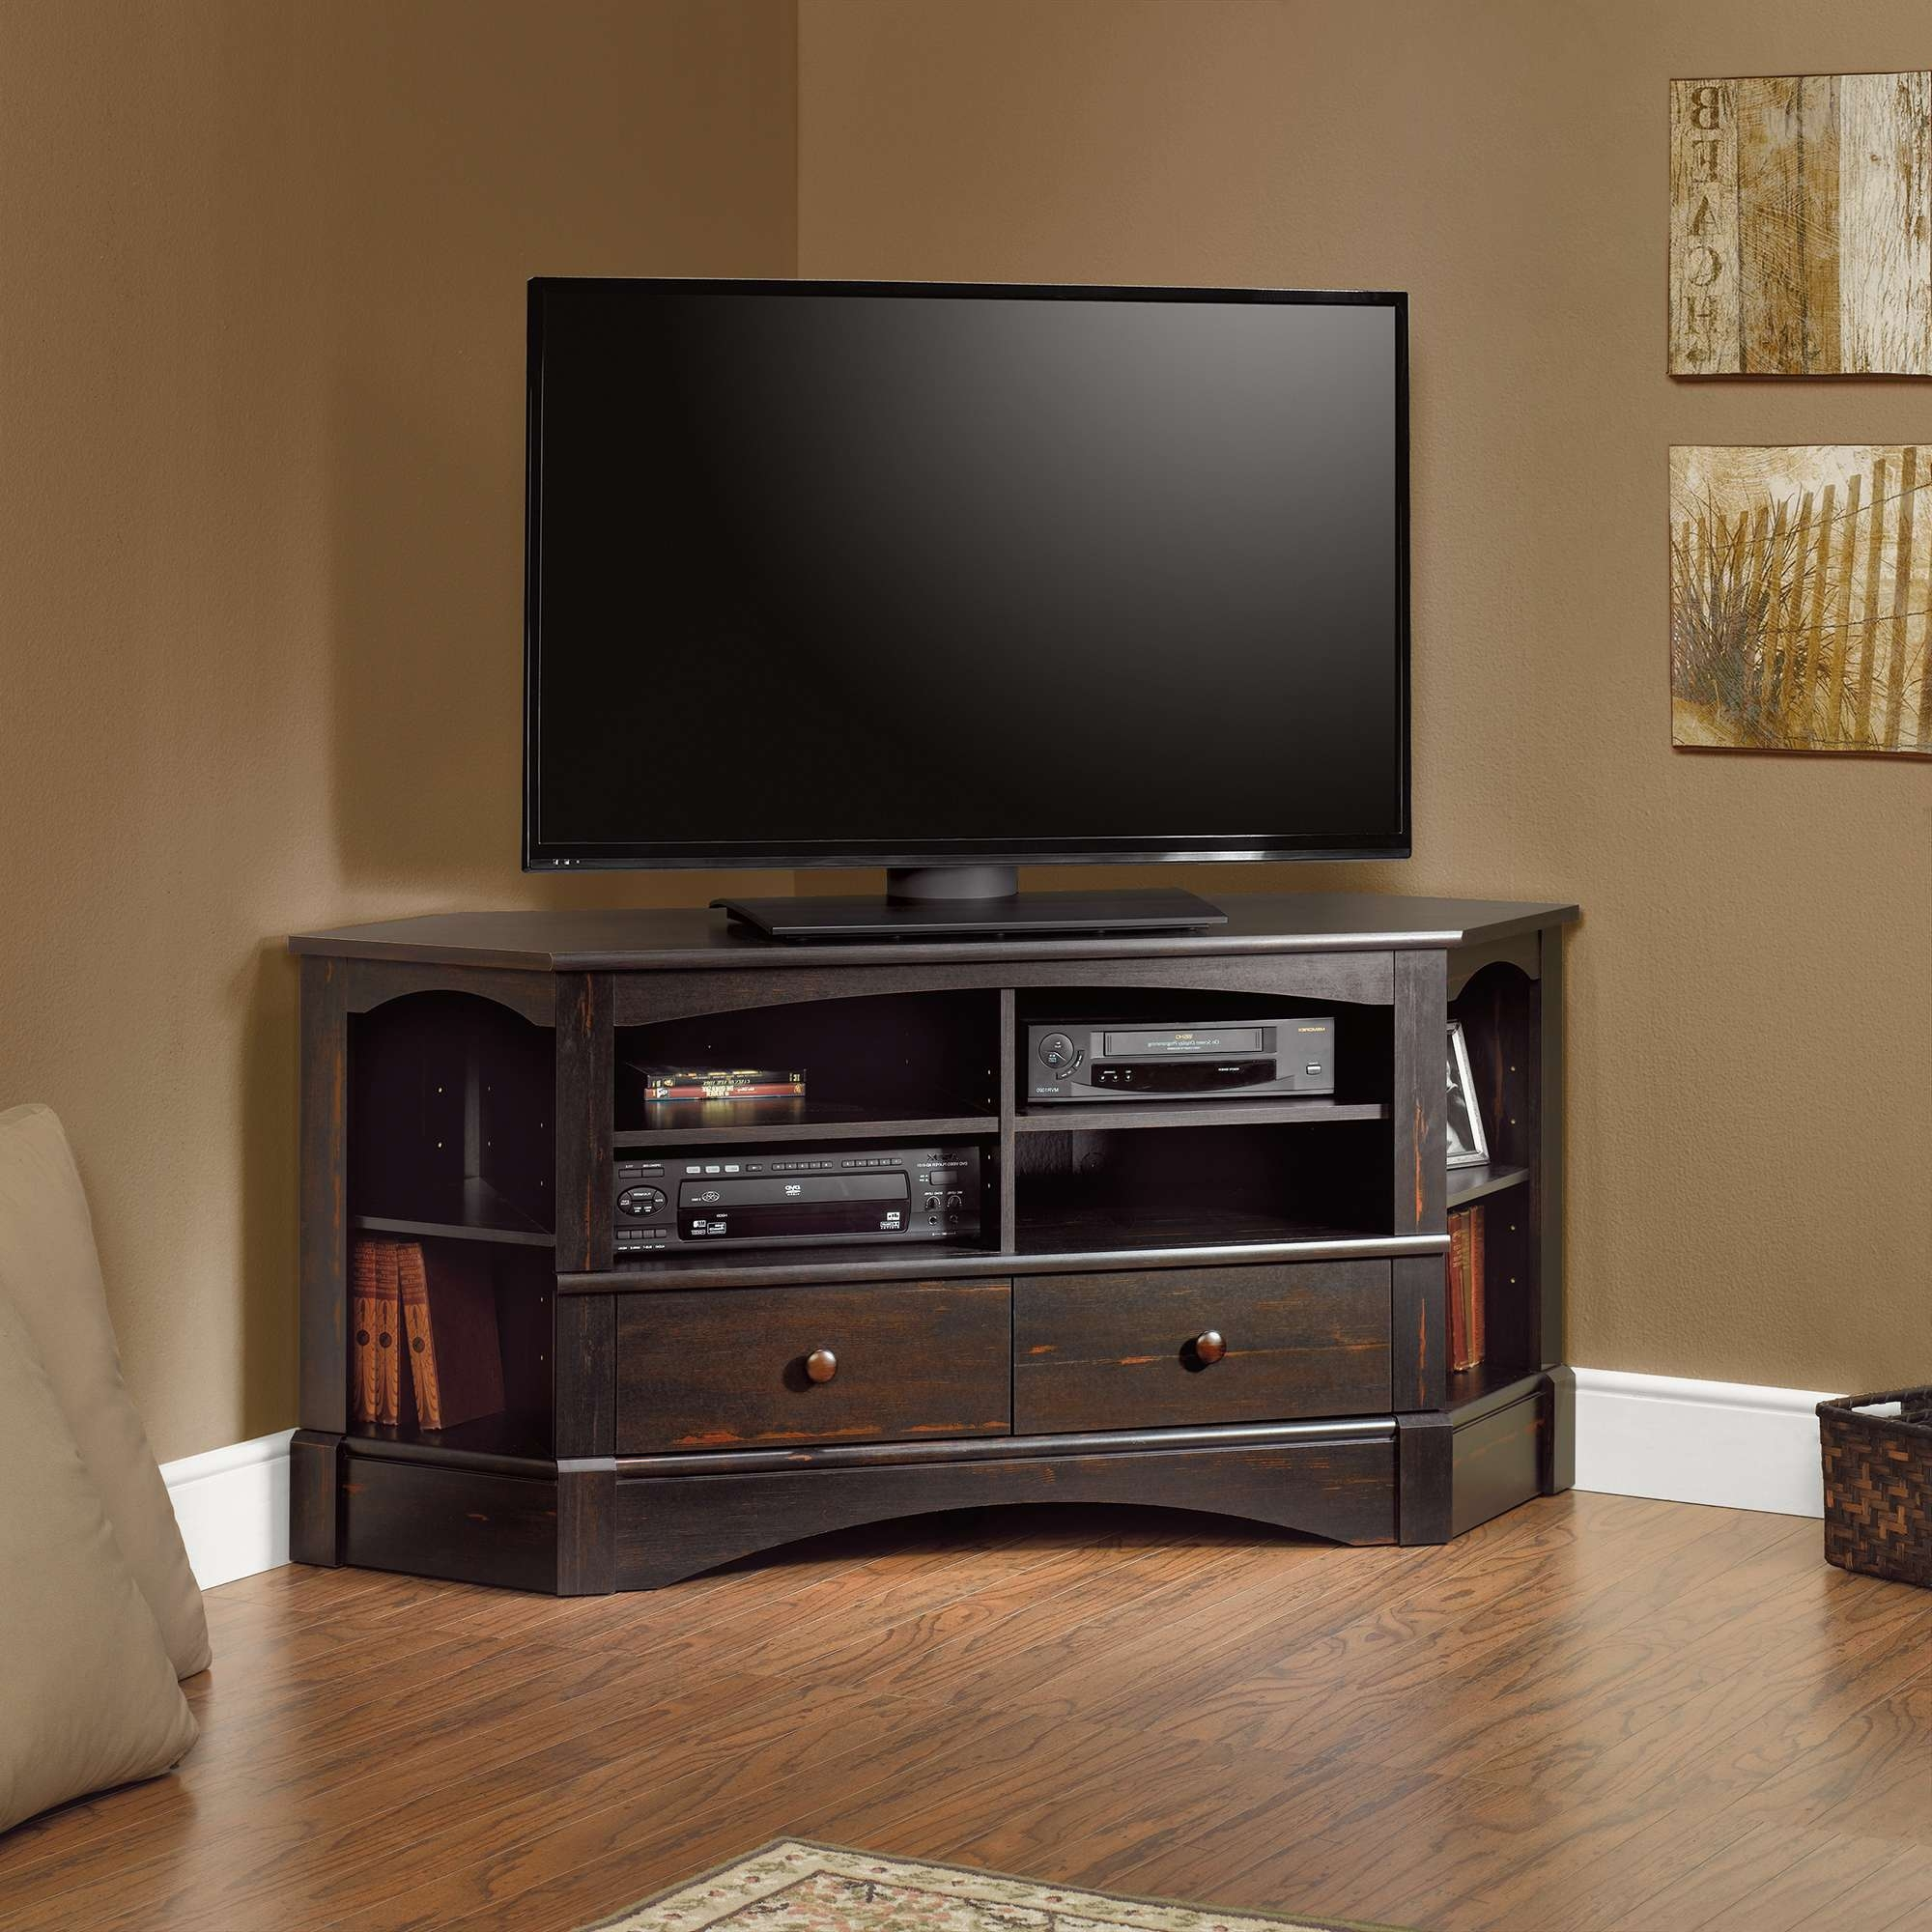 Harbor View | Corner Entertainment Credenza | 402902 | Sauder Pertaining To Real Wood Corner Tv Stands (View 5 of 15)